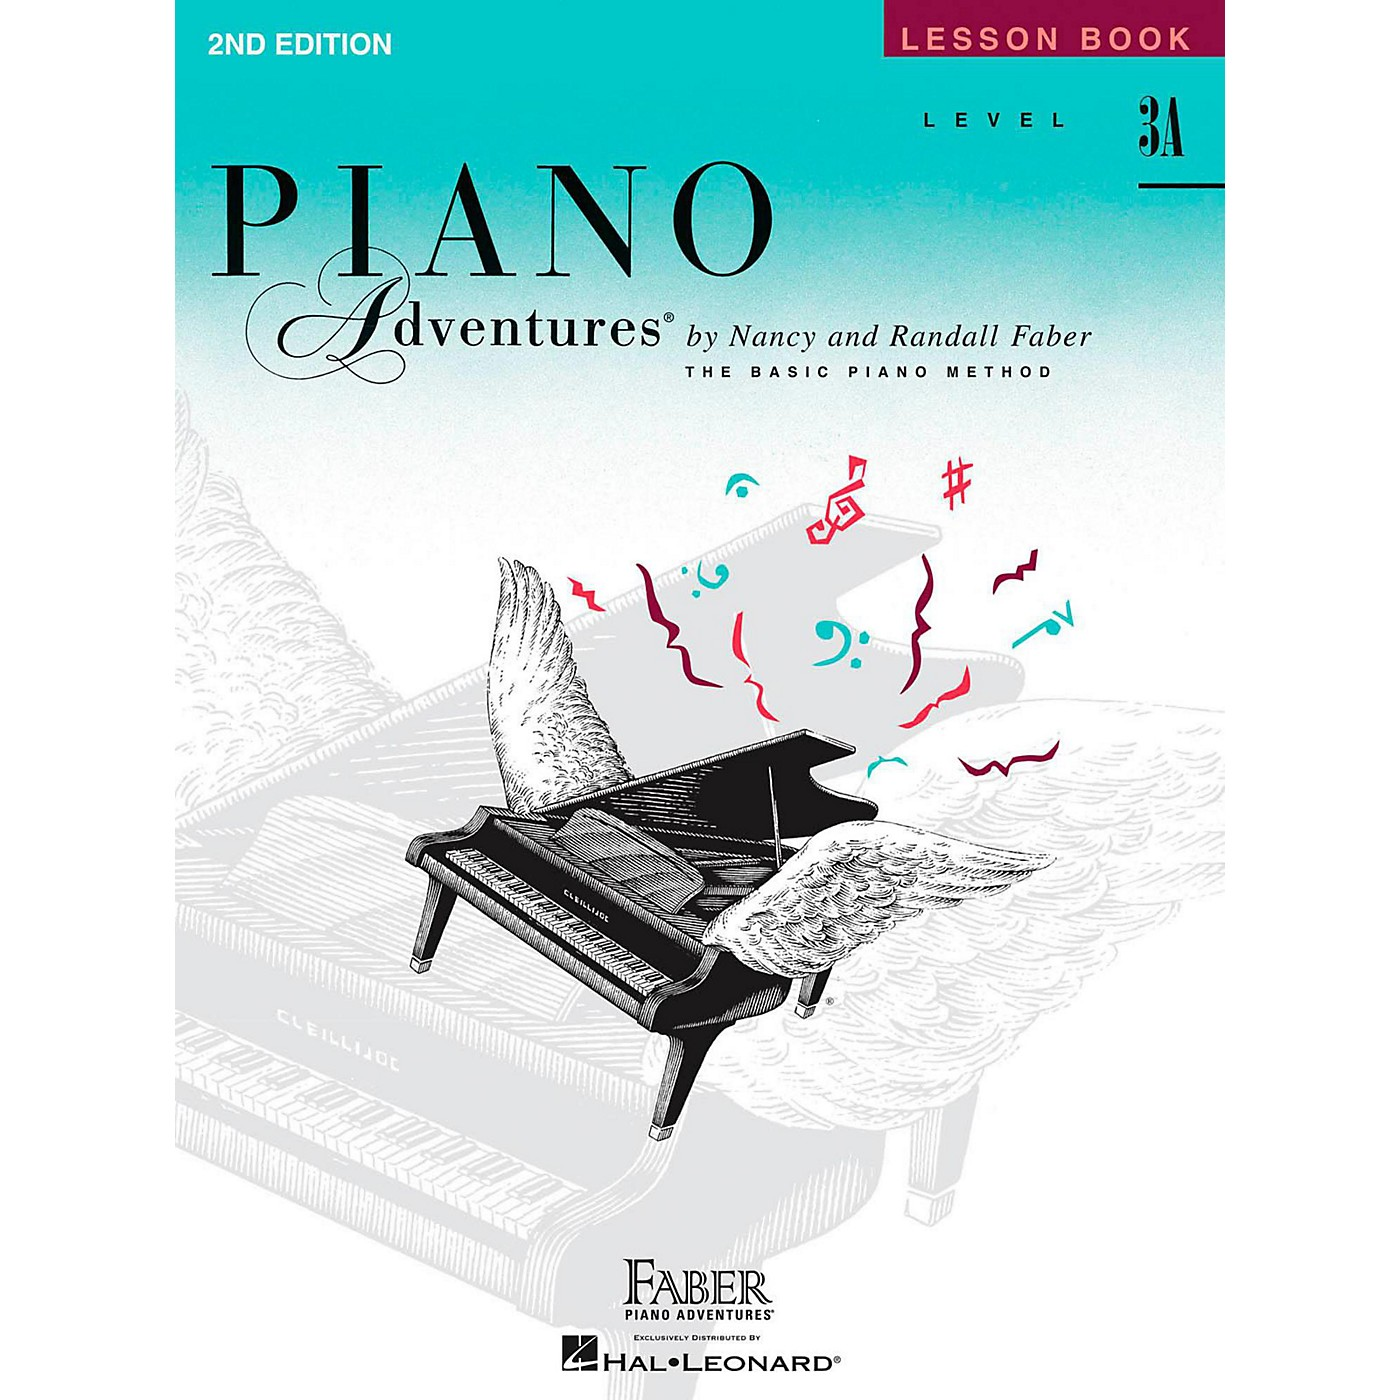 Faber Piano Adventures Piano Adventures Lesson Book Level 3A thumbnail